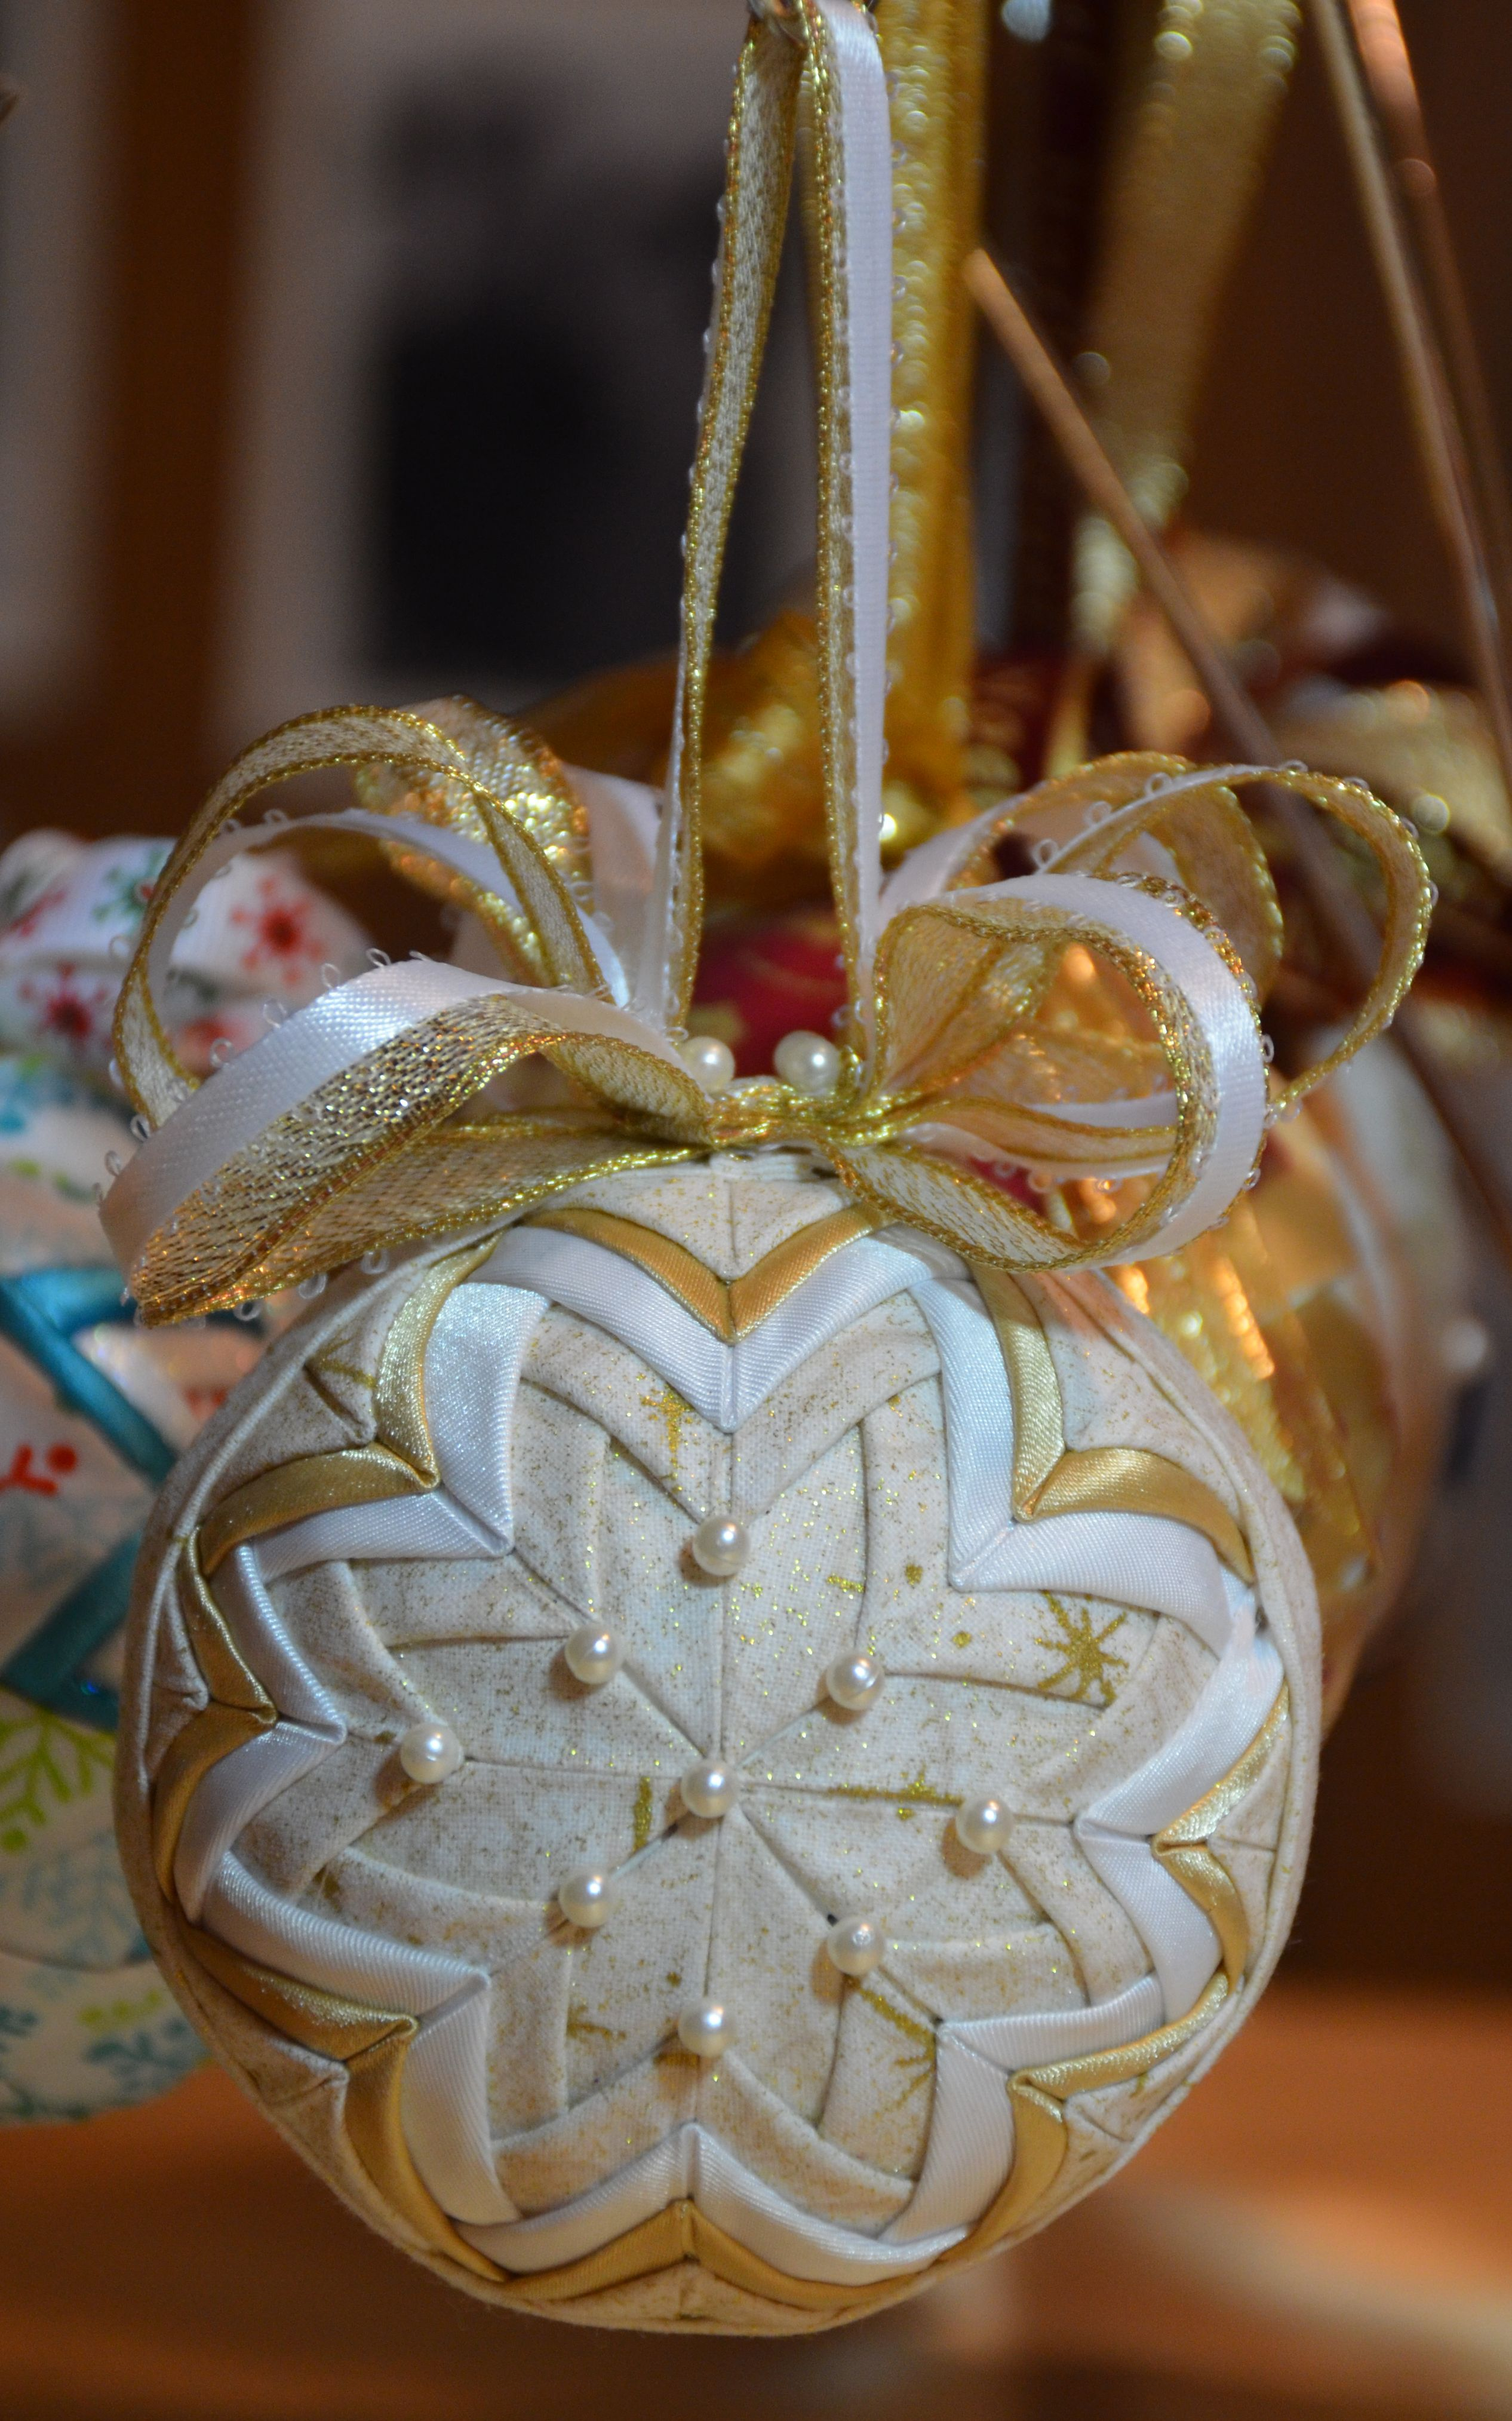 No Sew quilted ornament | My Quilted Ornaments | Pinterest | Ornament, Quilted ornaments and ...